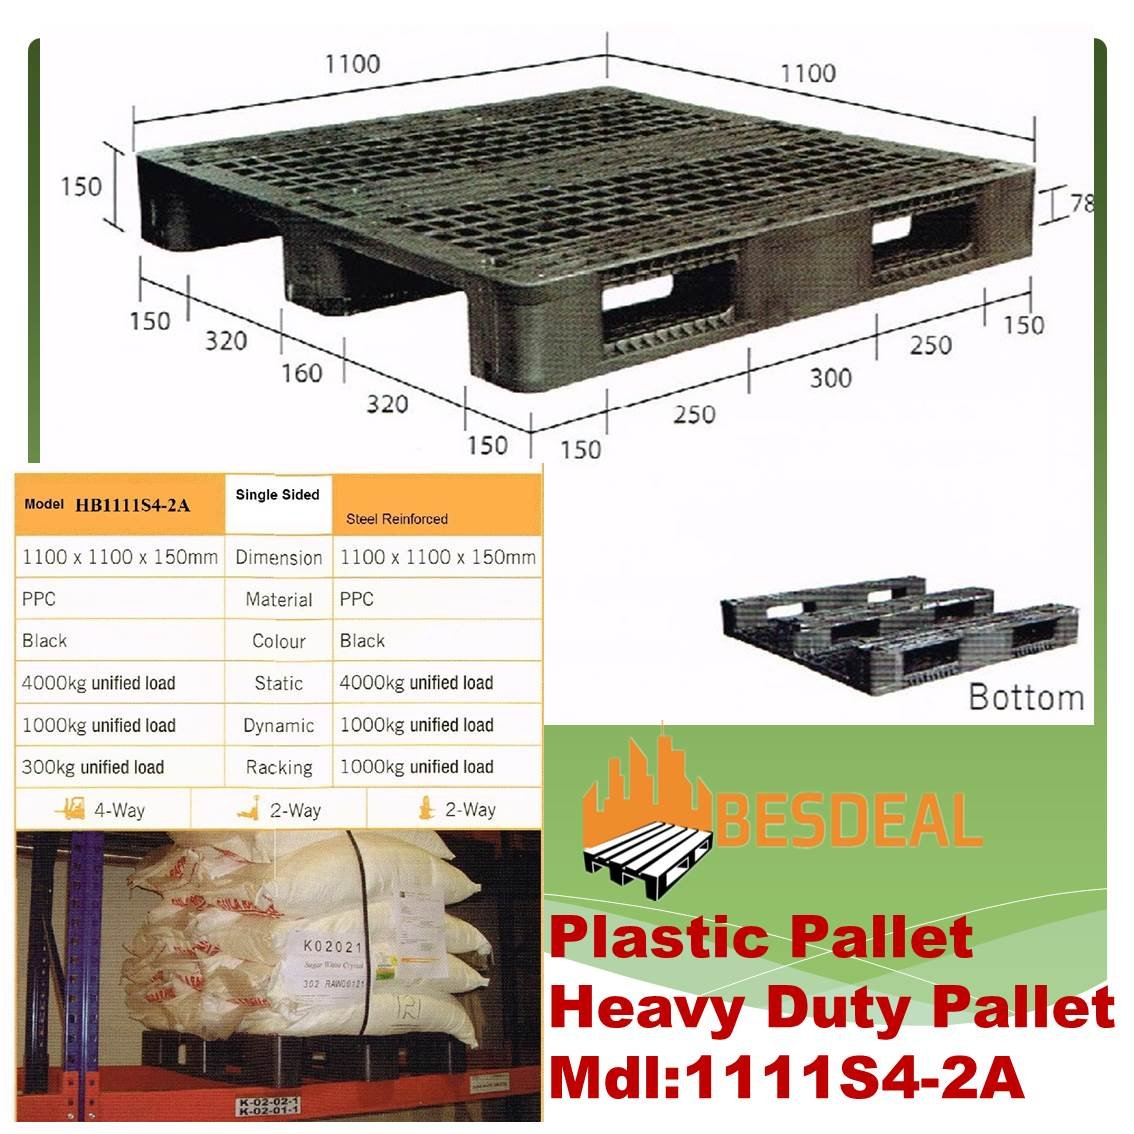 Heavy Duty Pallet, Mdl:1111S4-2A  For Sales Now!